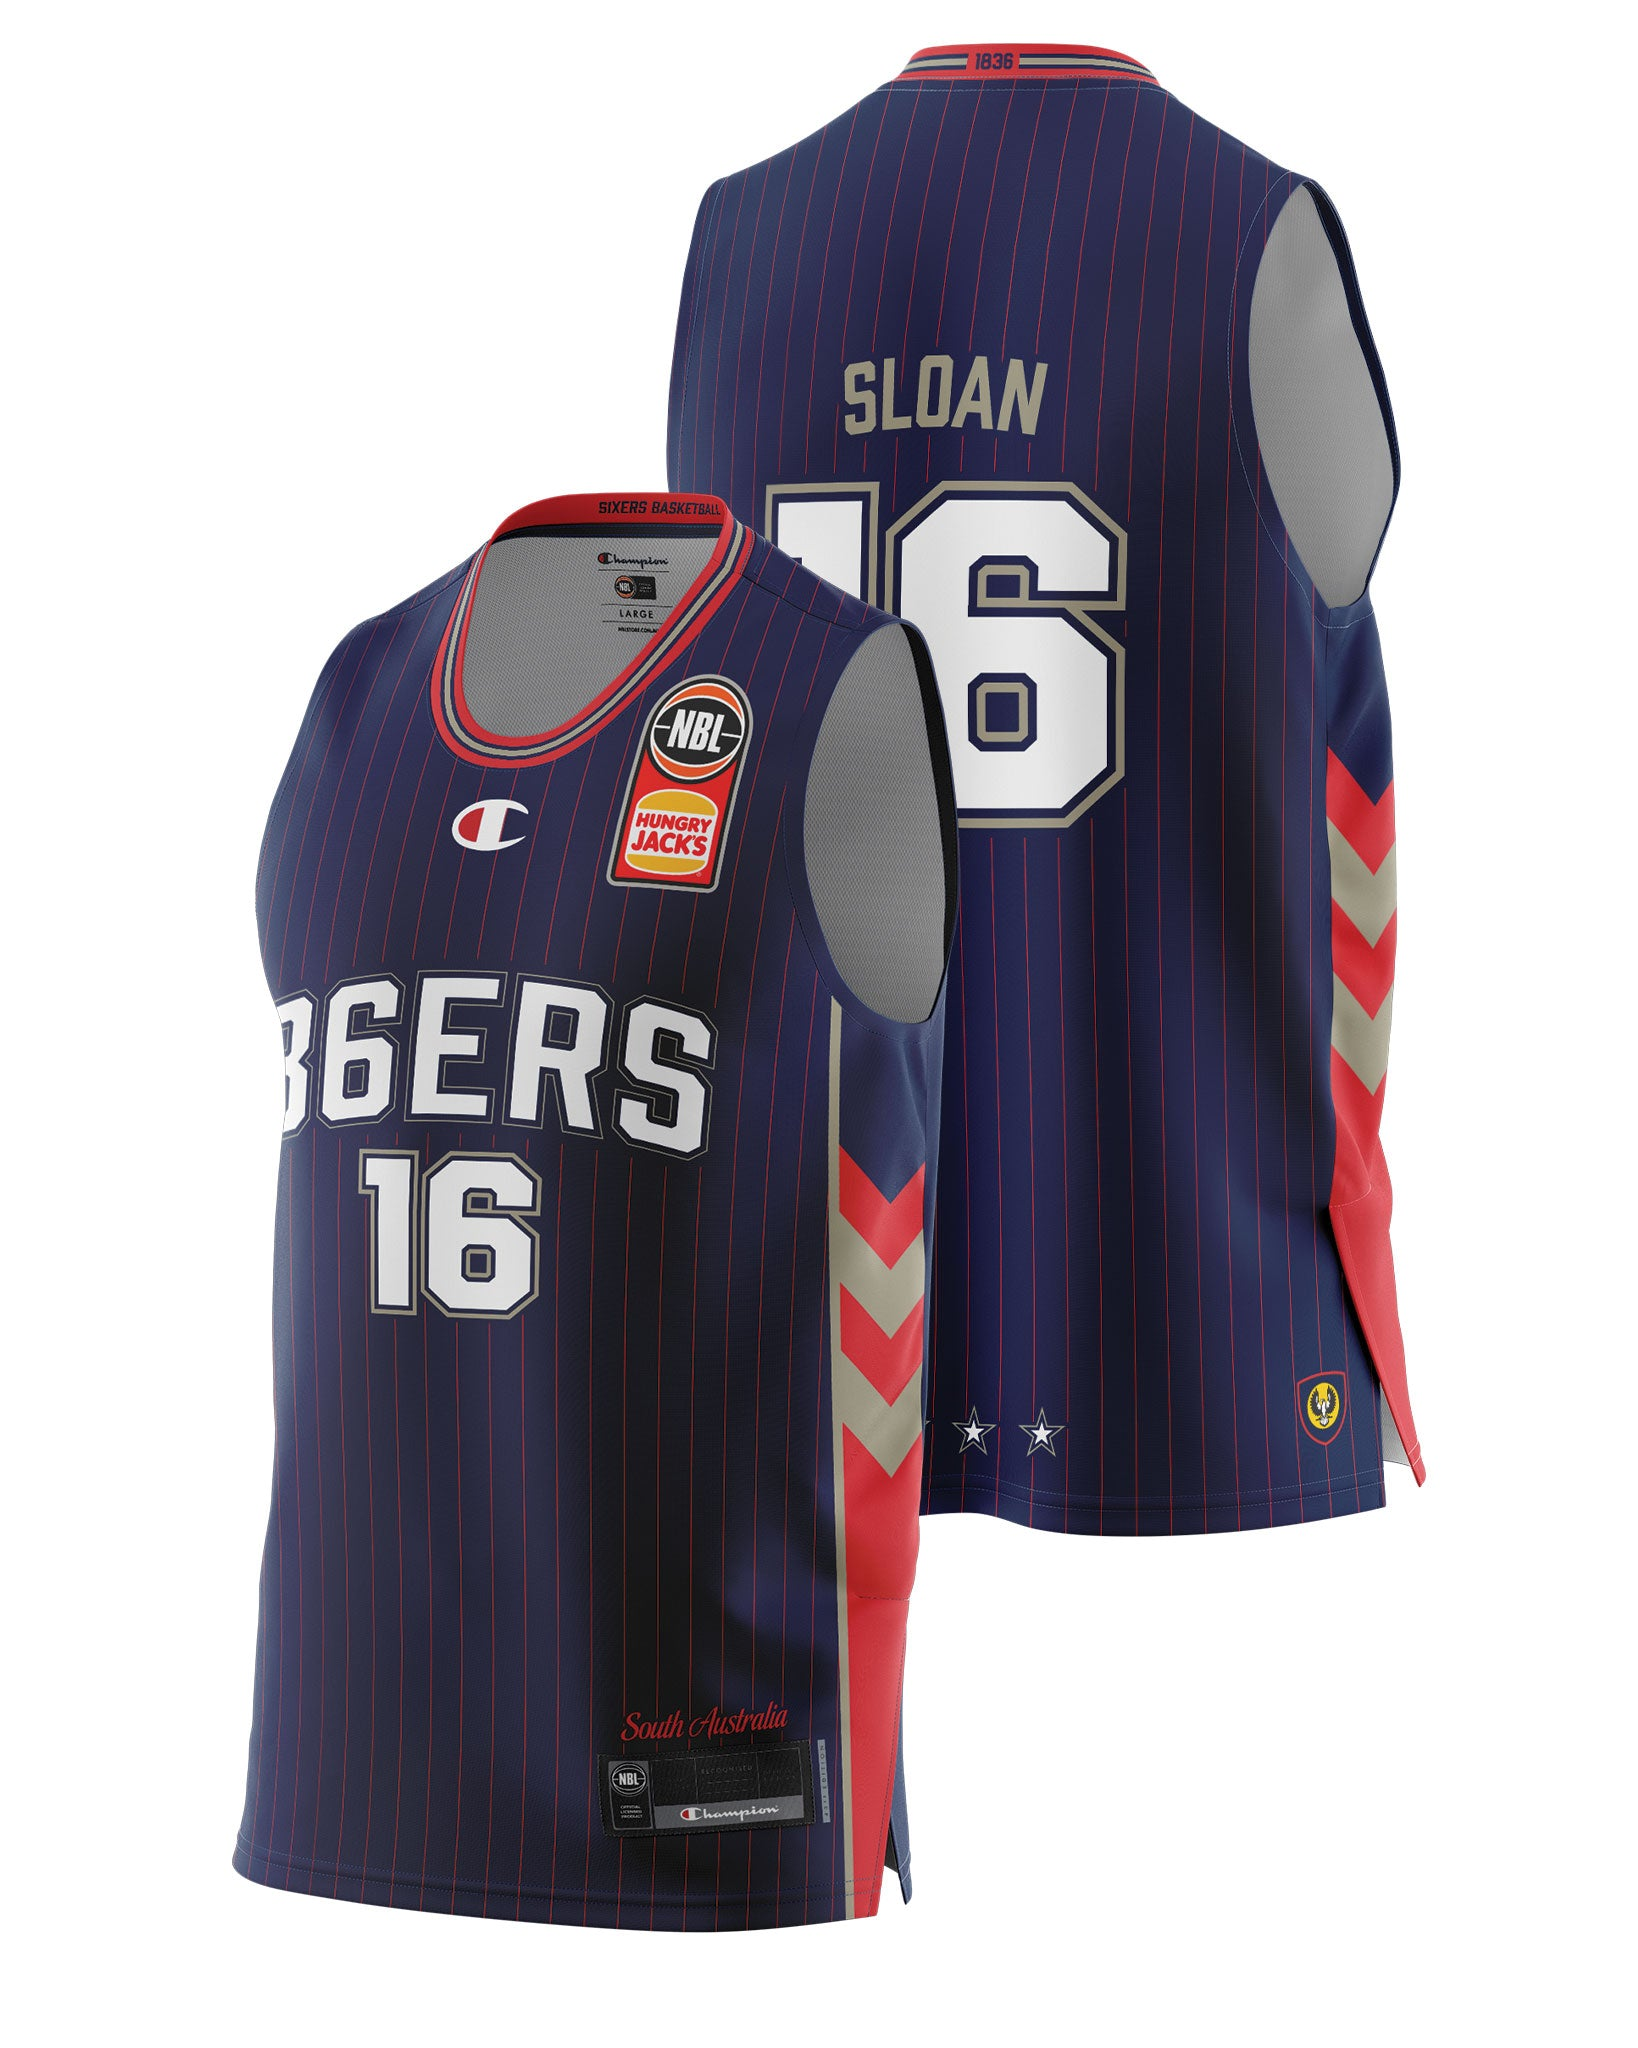 Adelaide 36ers 20/21 Authentic Home Jersey - Donald Sloan